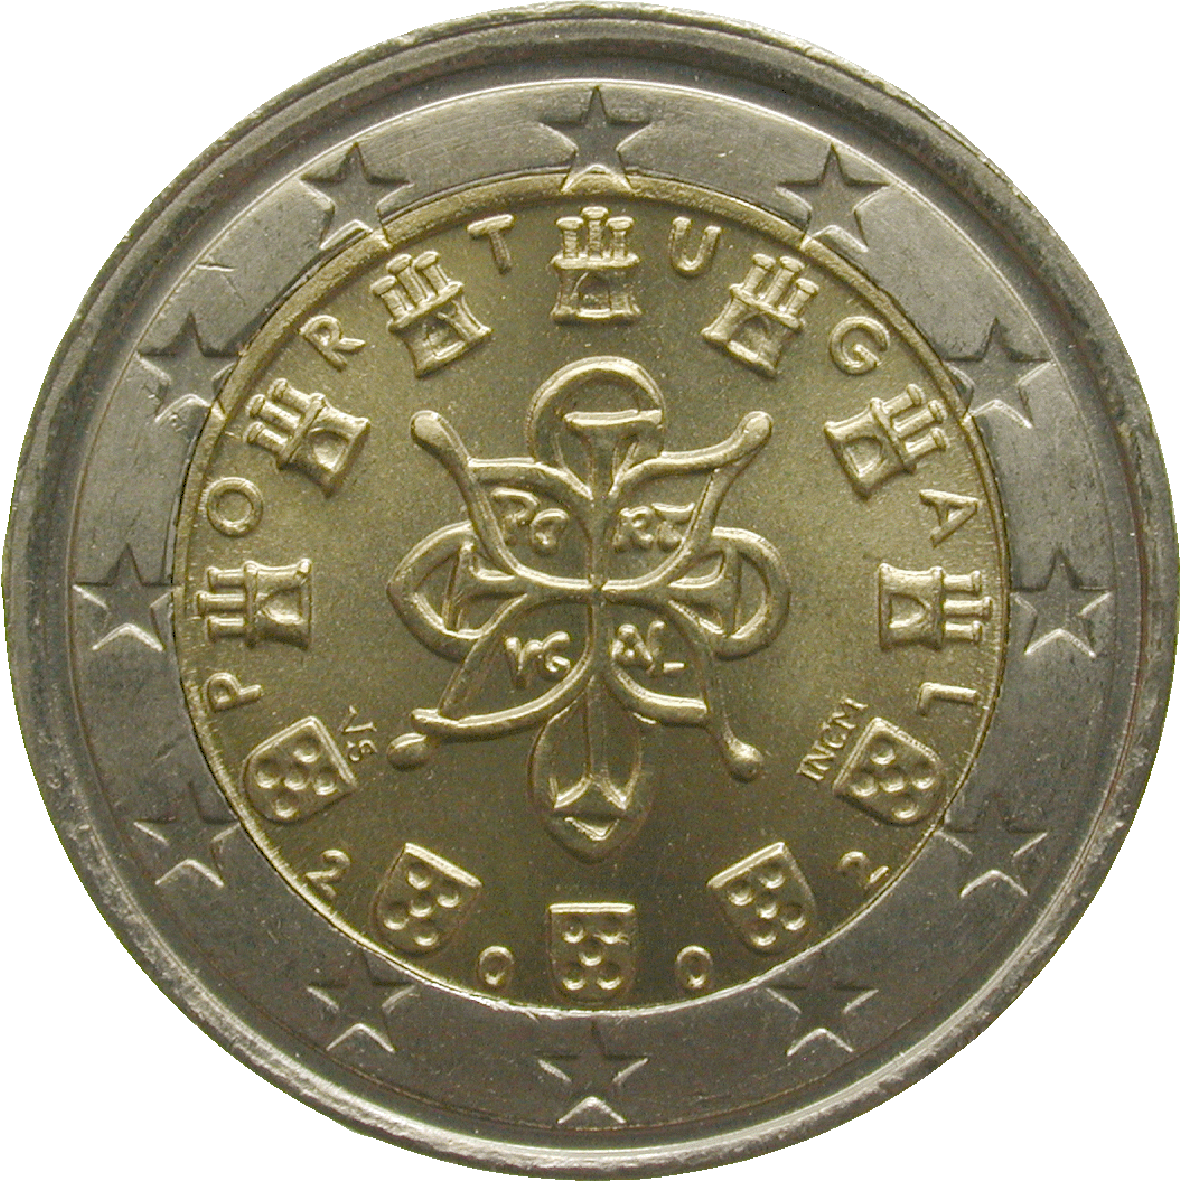 Republik Portugal, 2 Euro 2002 (reverse)